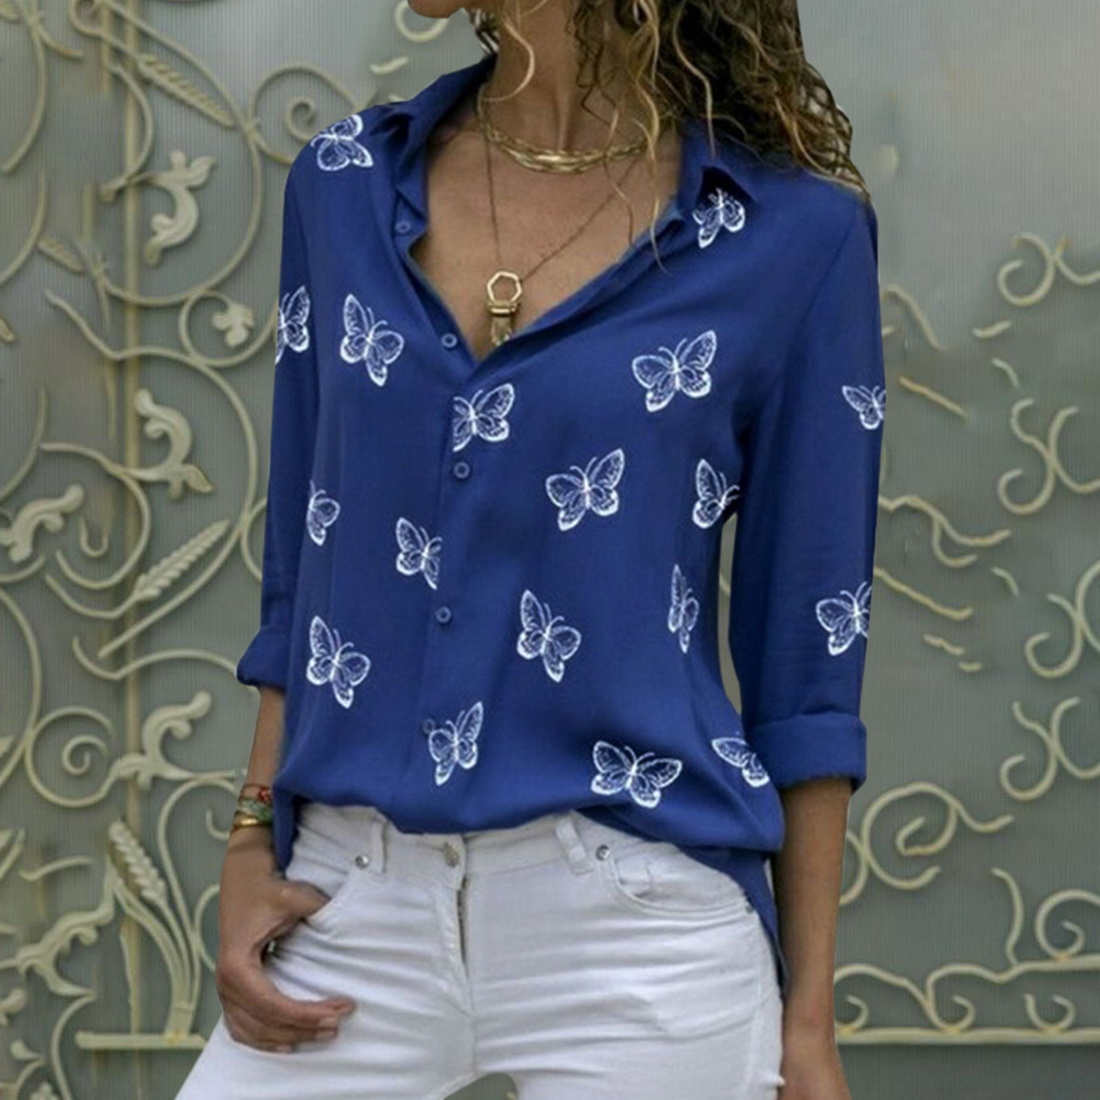 Fashion Women's Butterfly Print Blouse Shirt 2021 Spring Summer Casual Long Sleeve V Neck Ladies Buttons Tops Loose Blouses